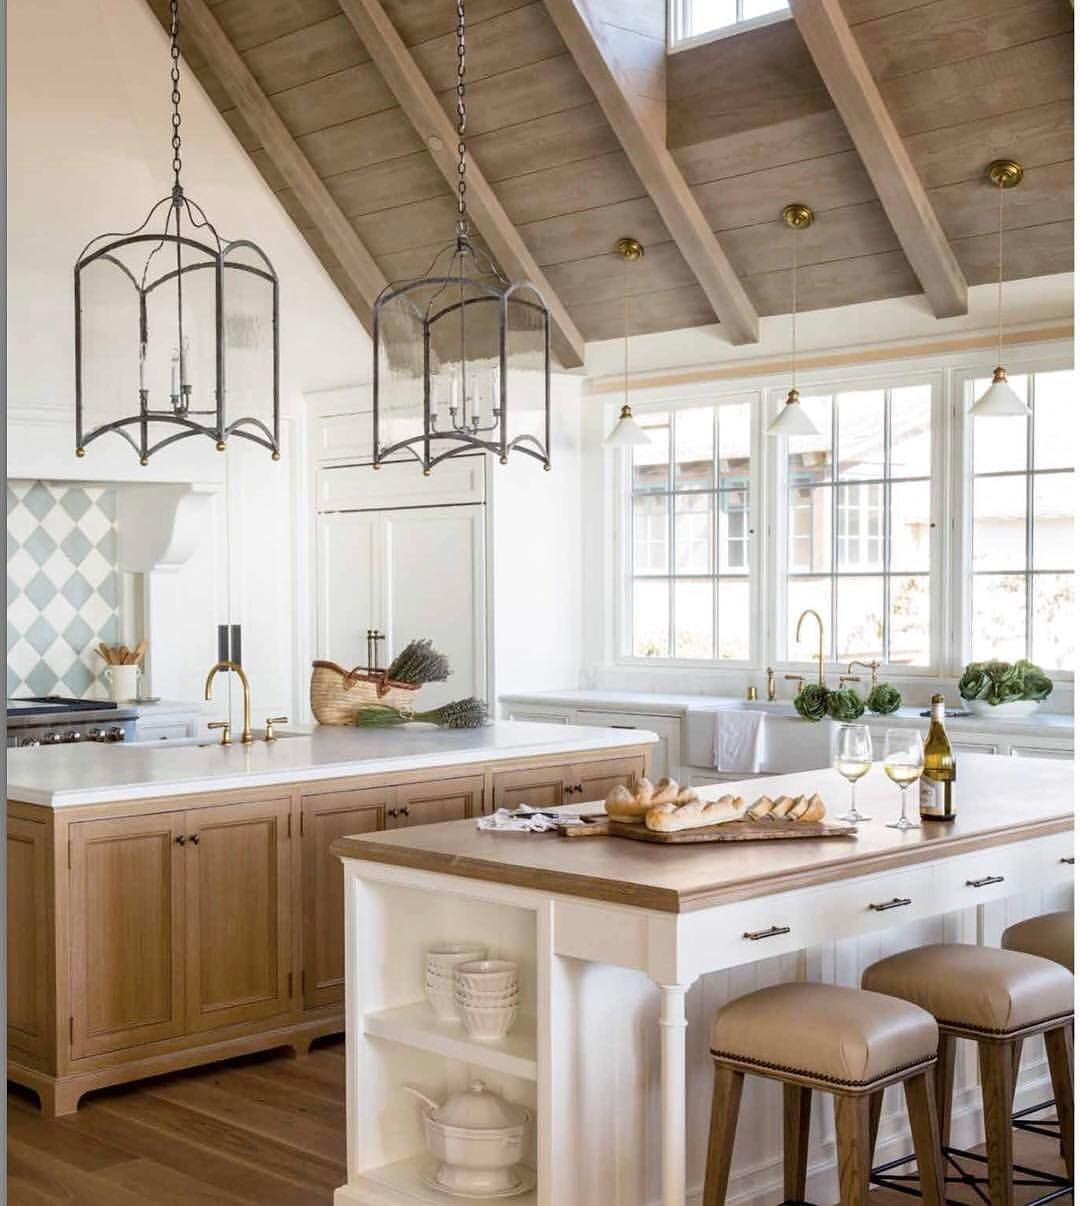 White And Rustic Wood Kitchen With Lantern Pendant Lighting